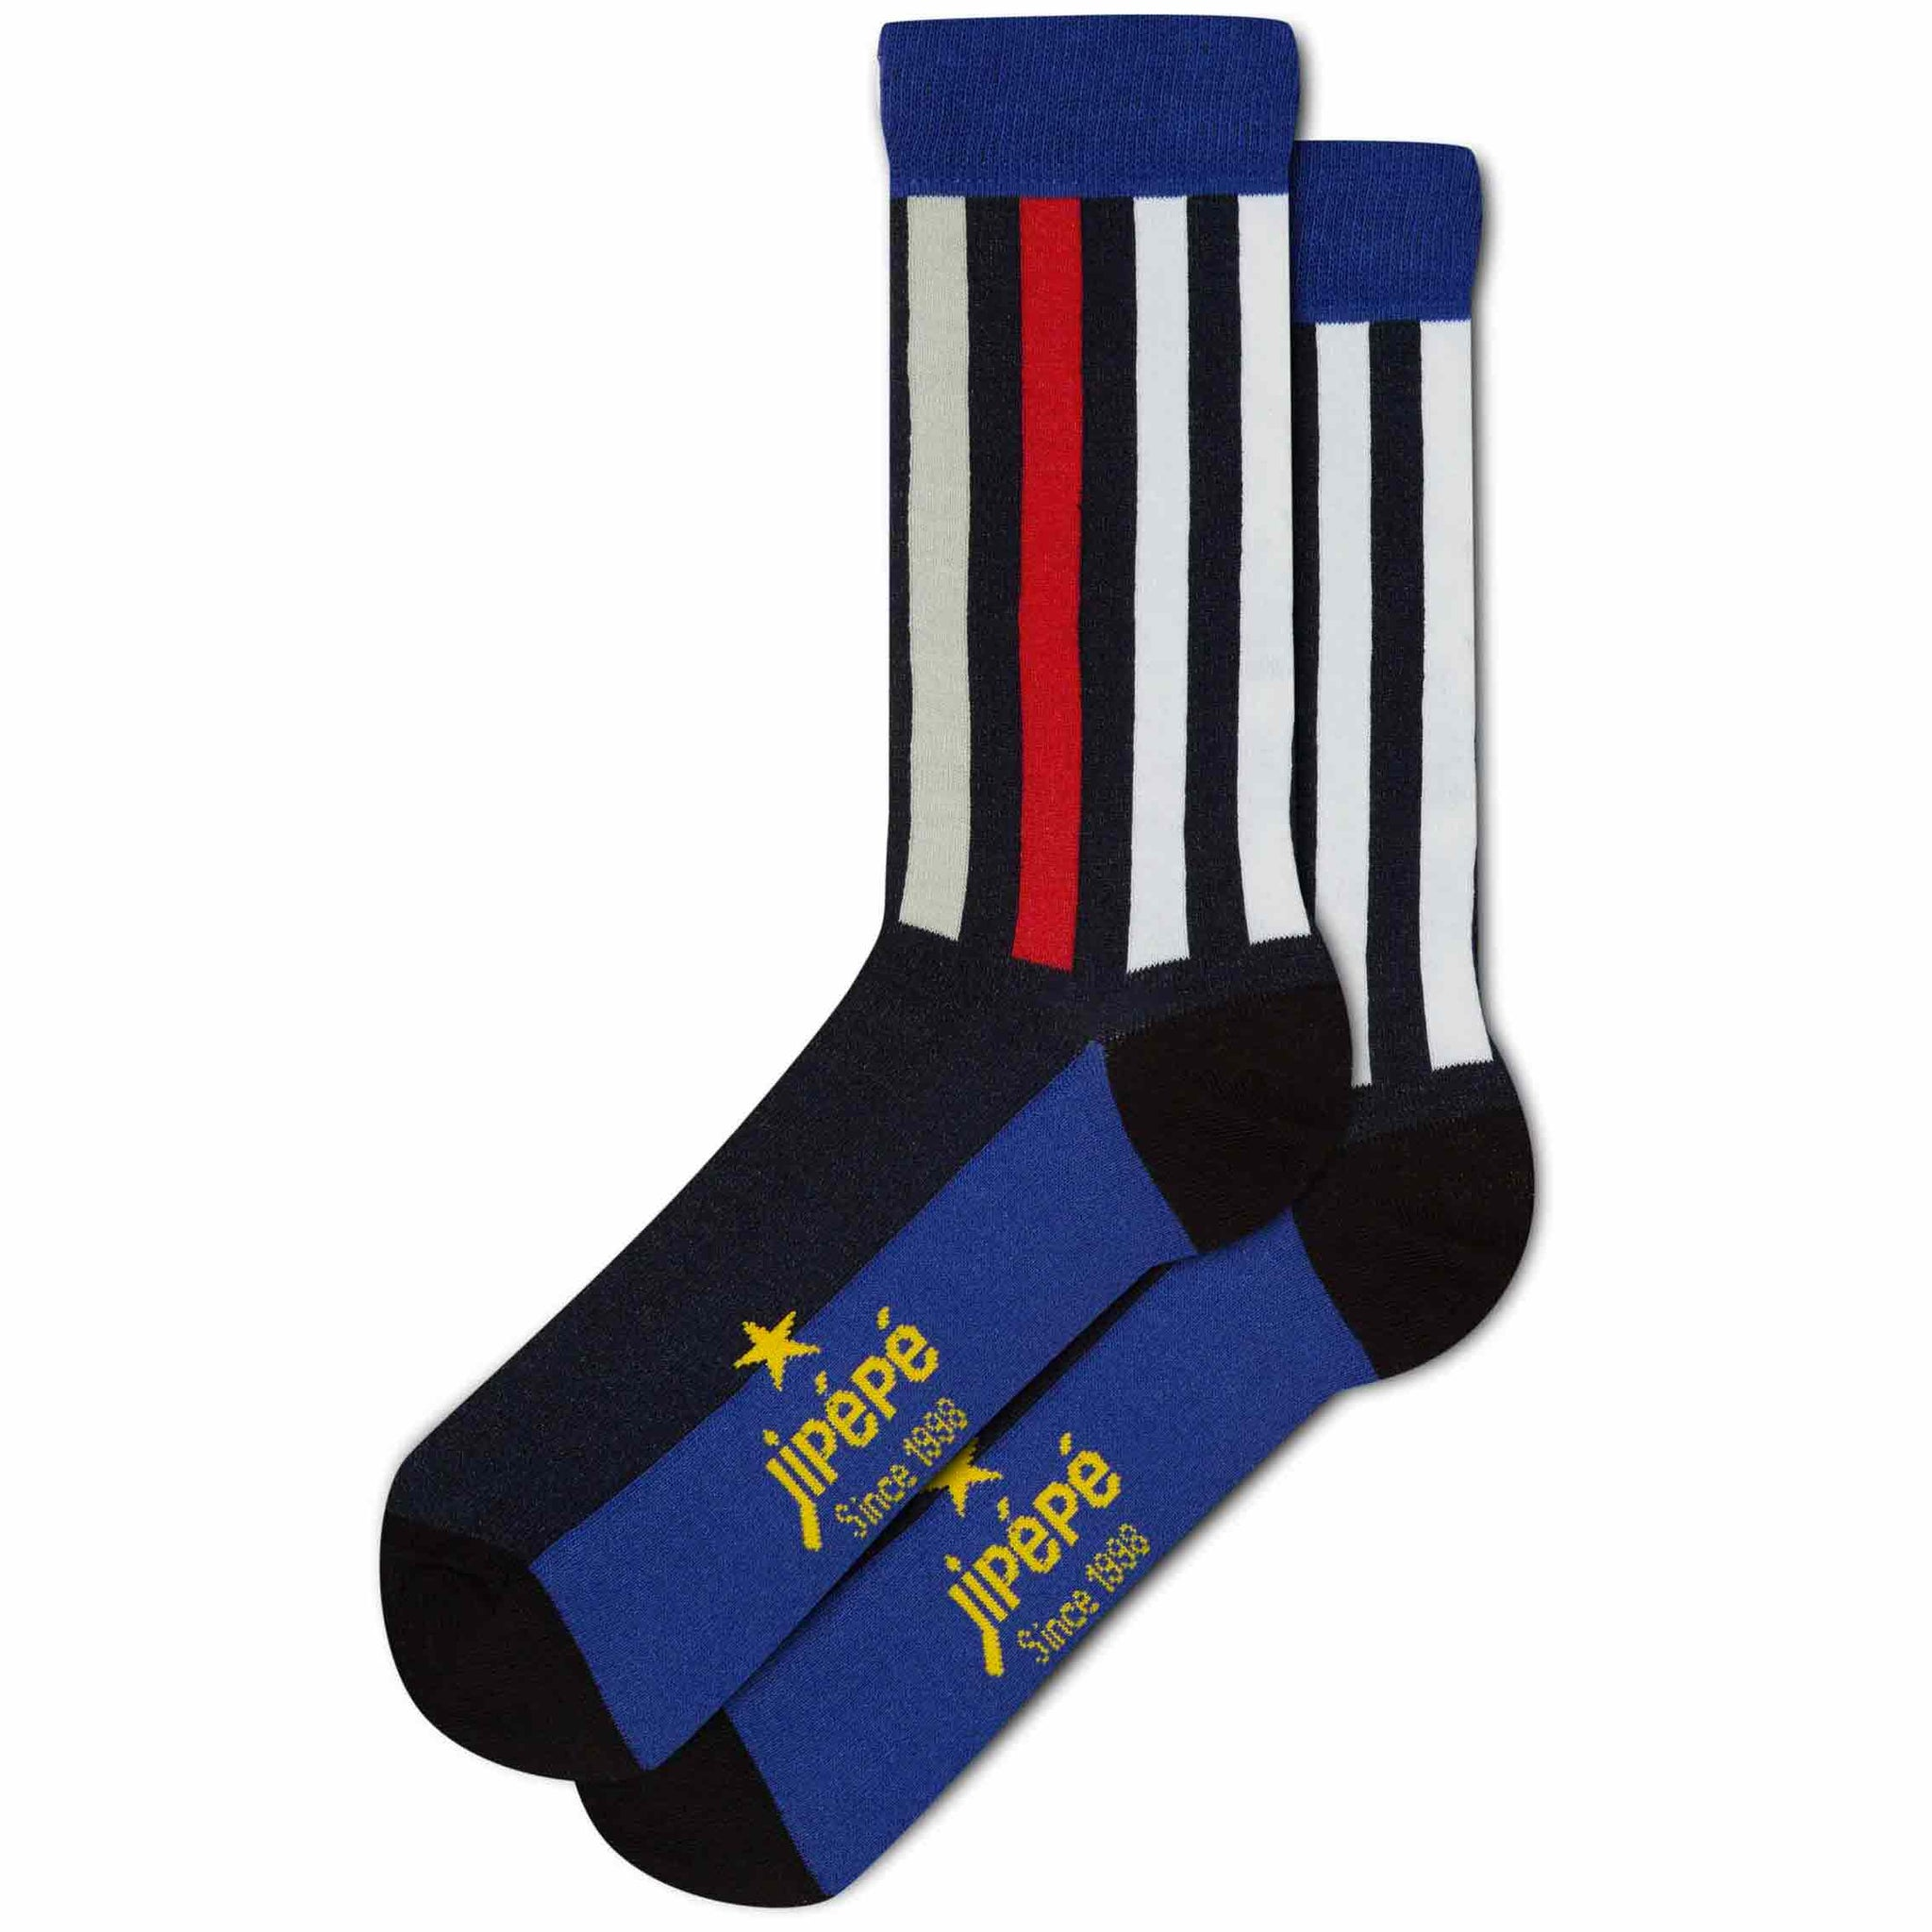 Chaussettes fantaisie Rayures pour Homme